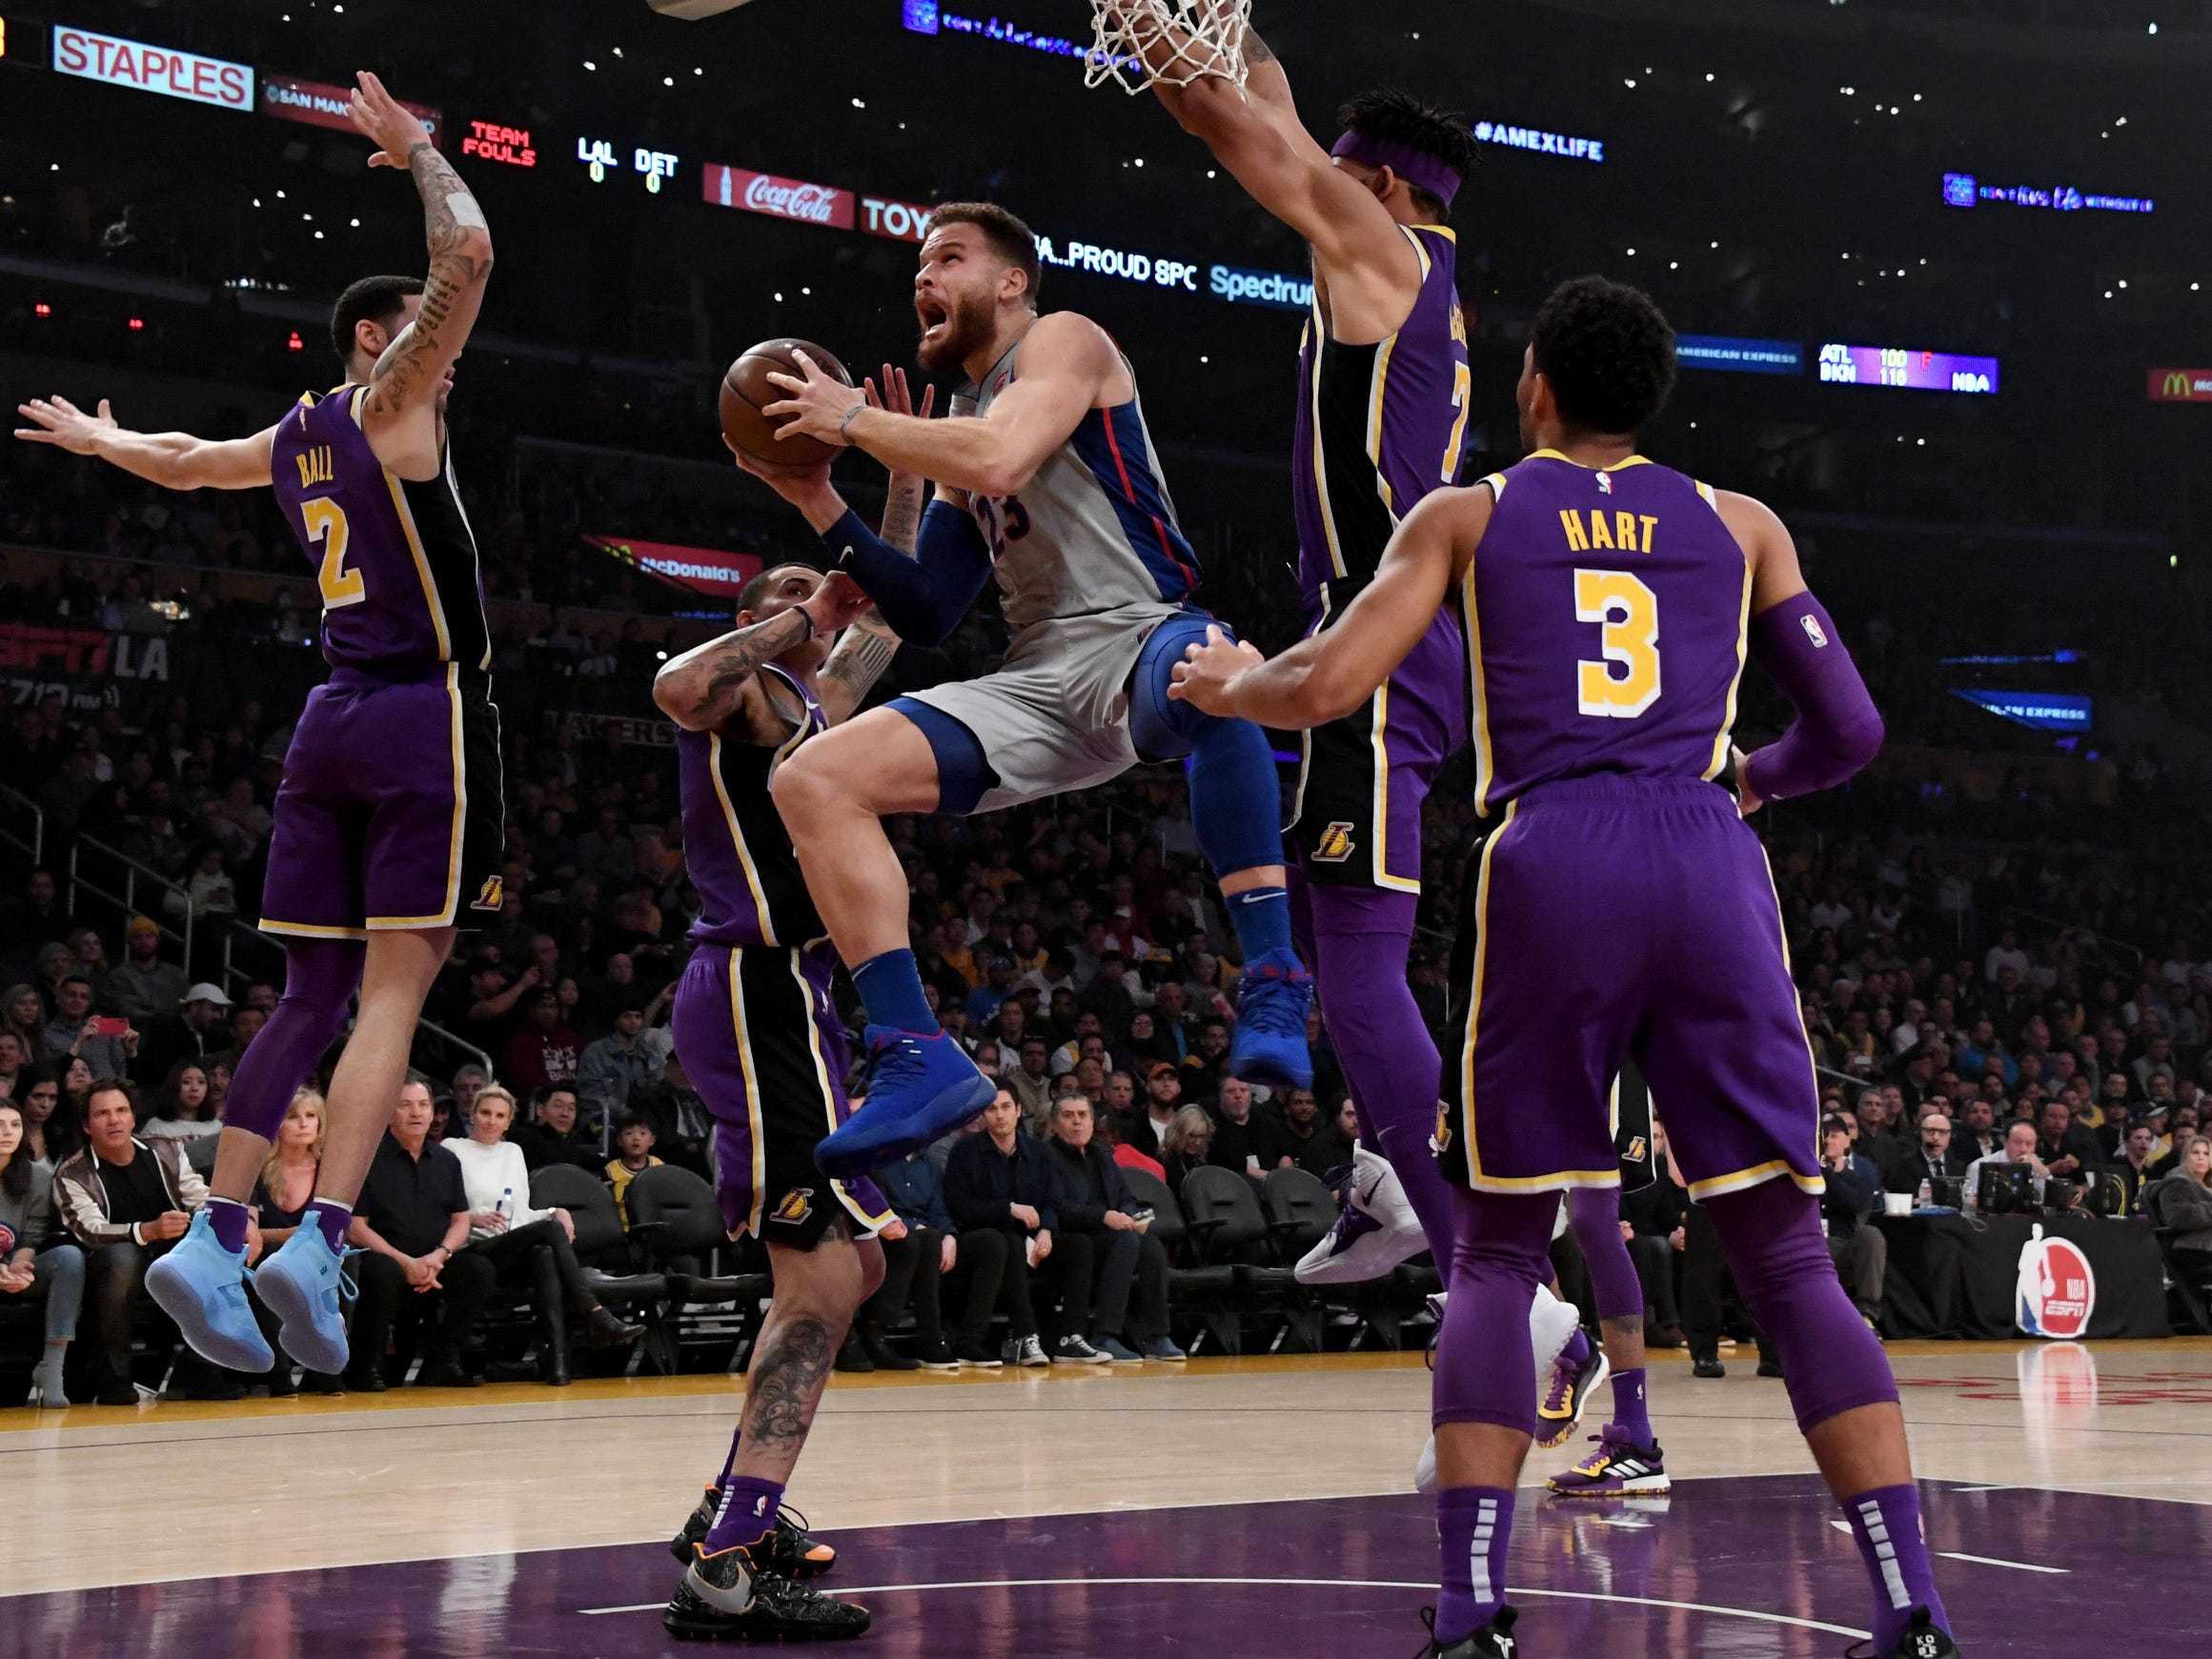 Detroit Pistons forward Blake Griffin (23) drives to the basket past Los Angeles Lakers guard Lonzo Ball (2) during the first half at the Staples Center on Wednesday, Jan. 9, 2019, in Los Angeles.